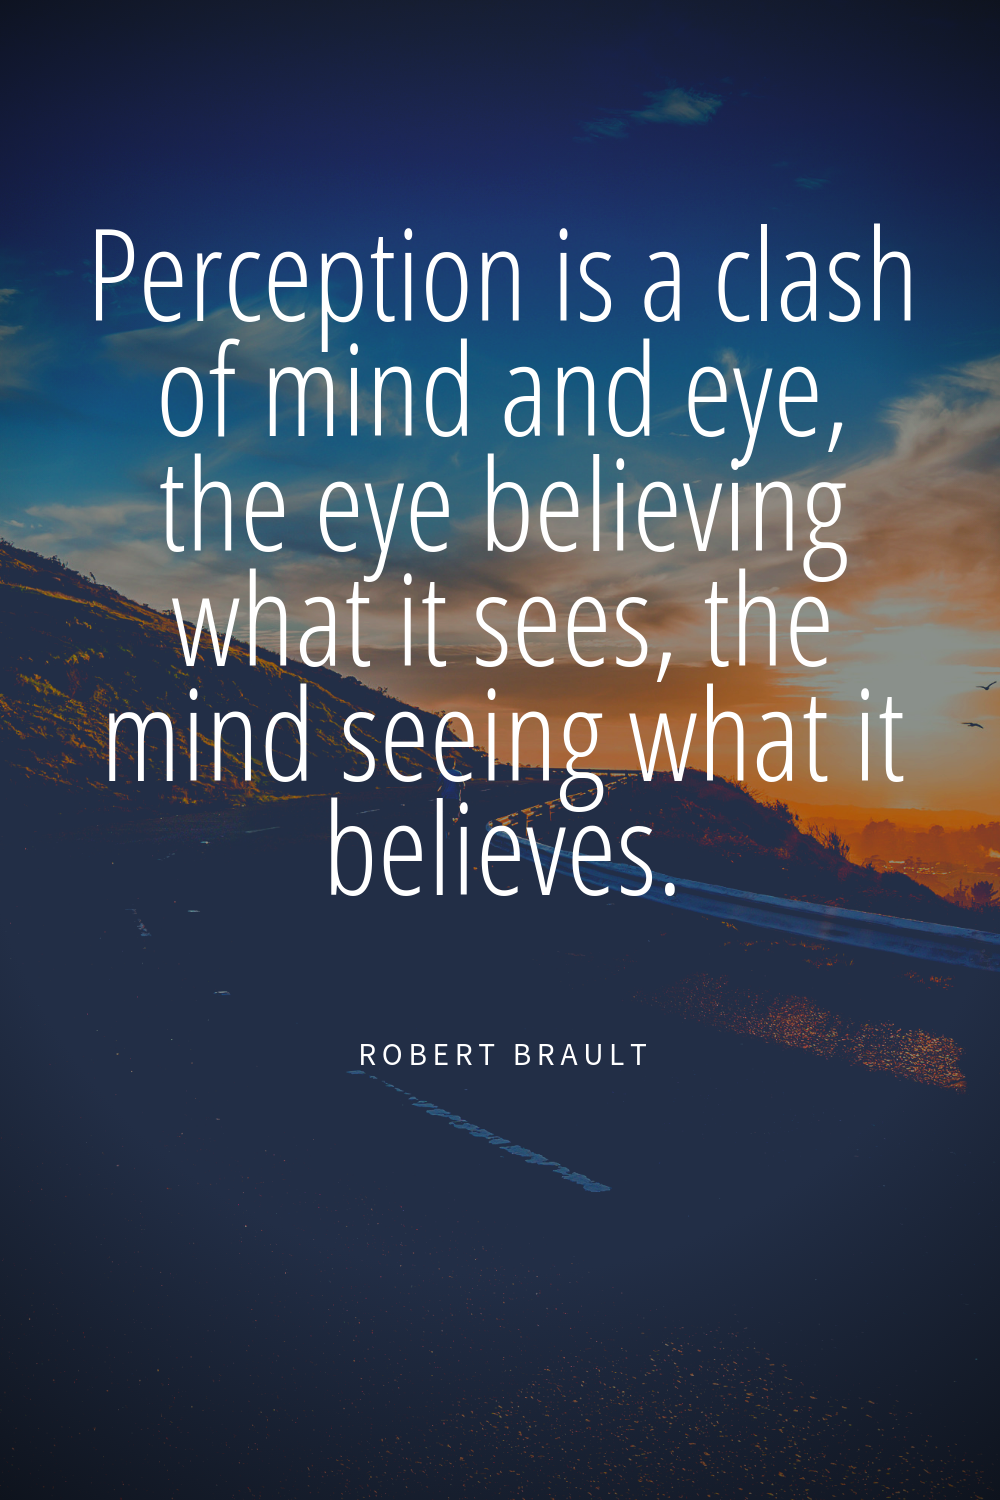 Quotes On Perception